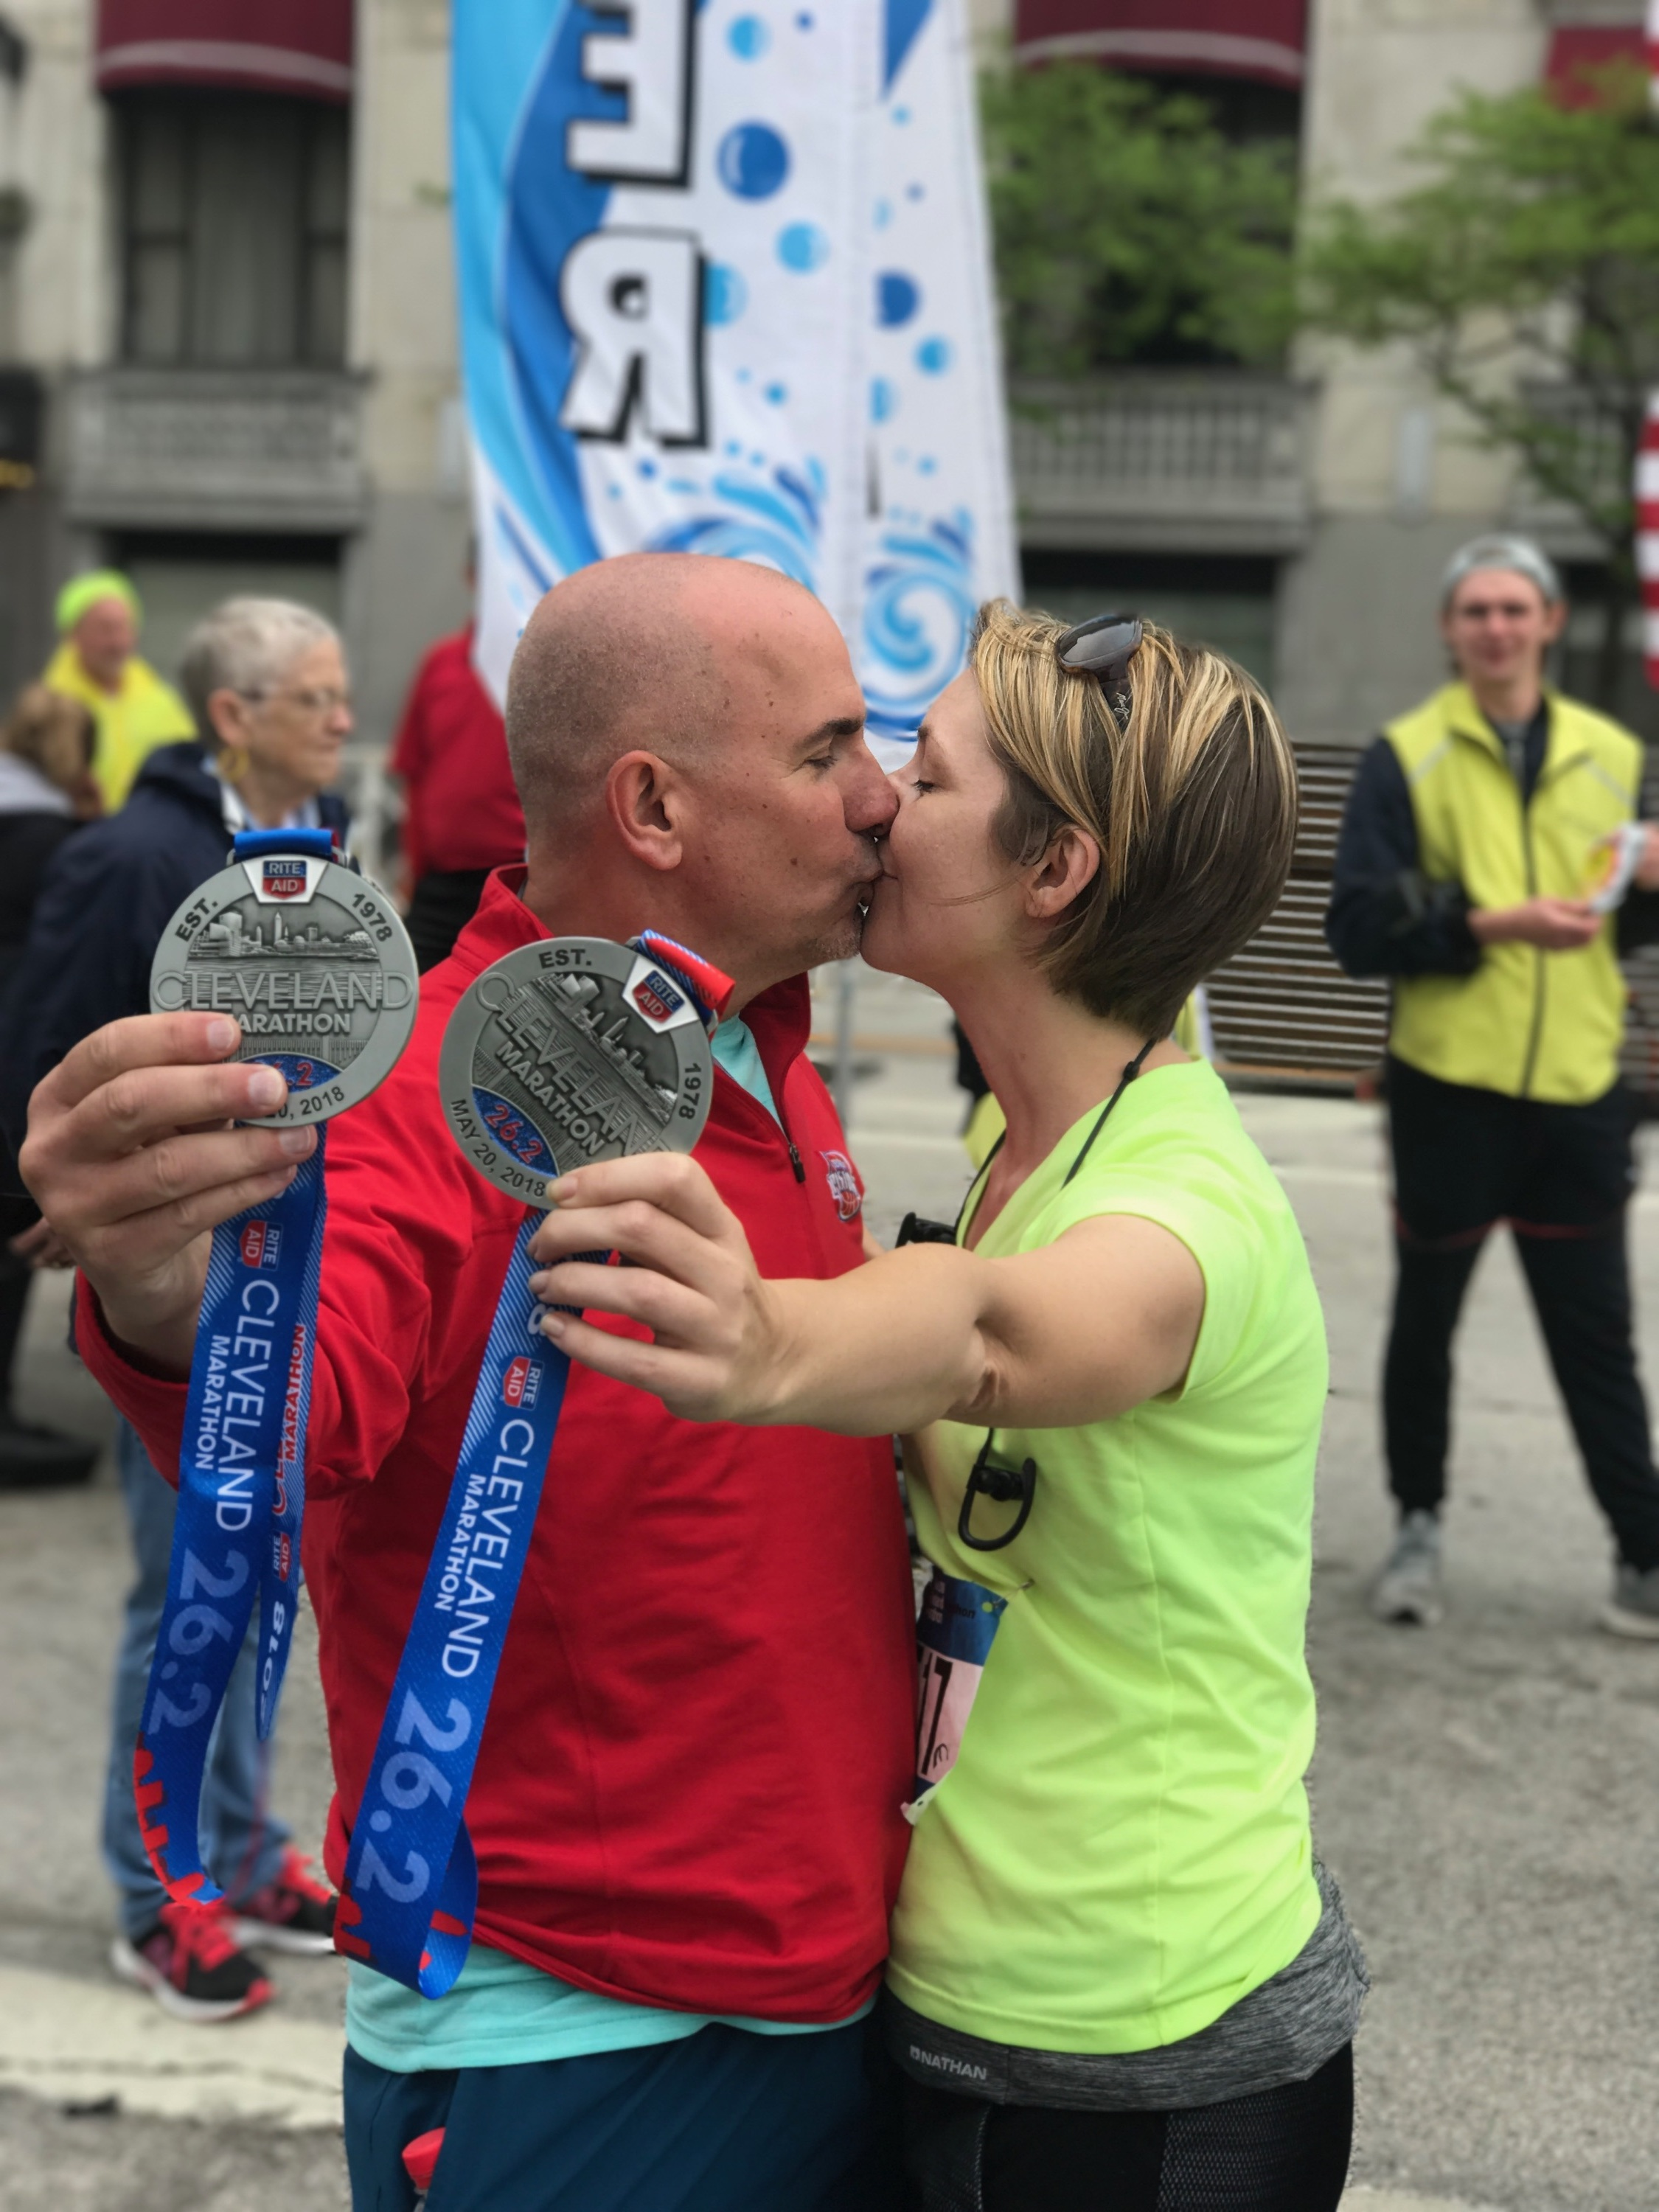 We did it! Ed and Erica Castner finish the Cleveland Marathon race within 35 minutes of each other.